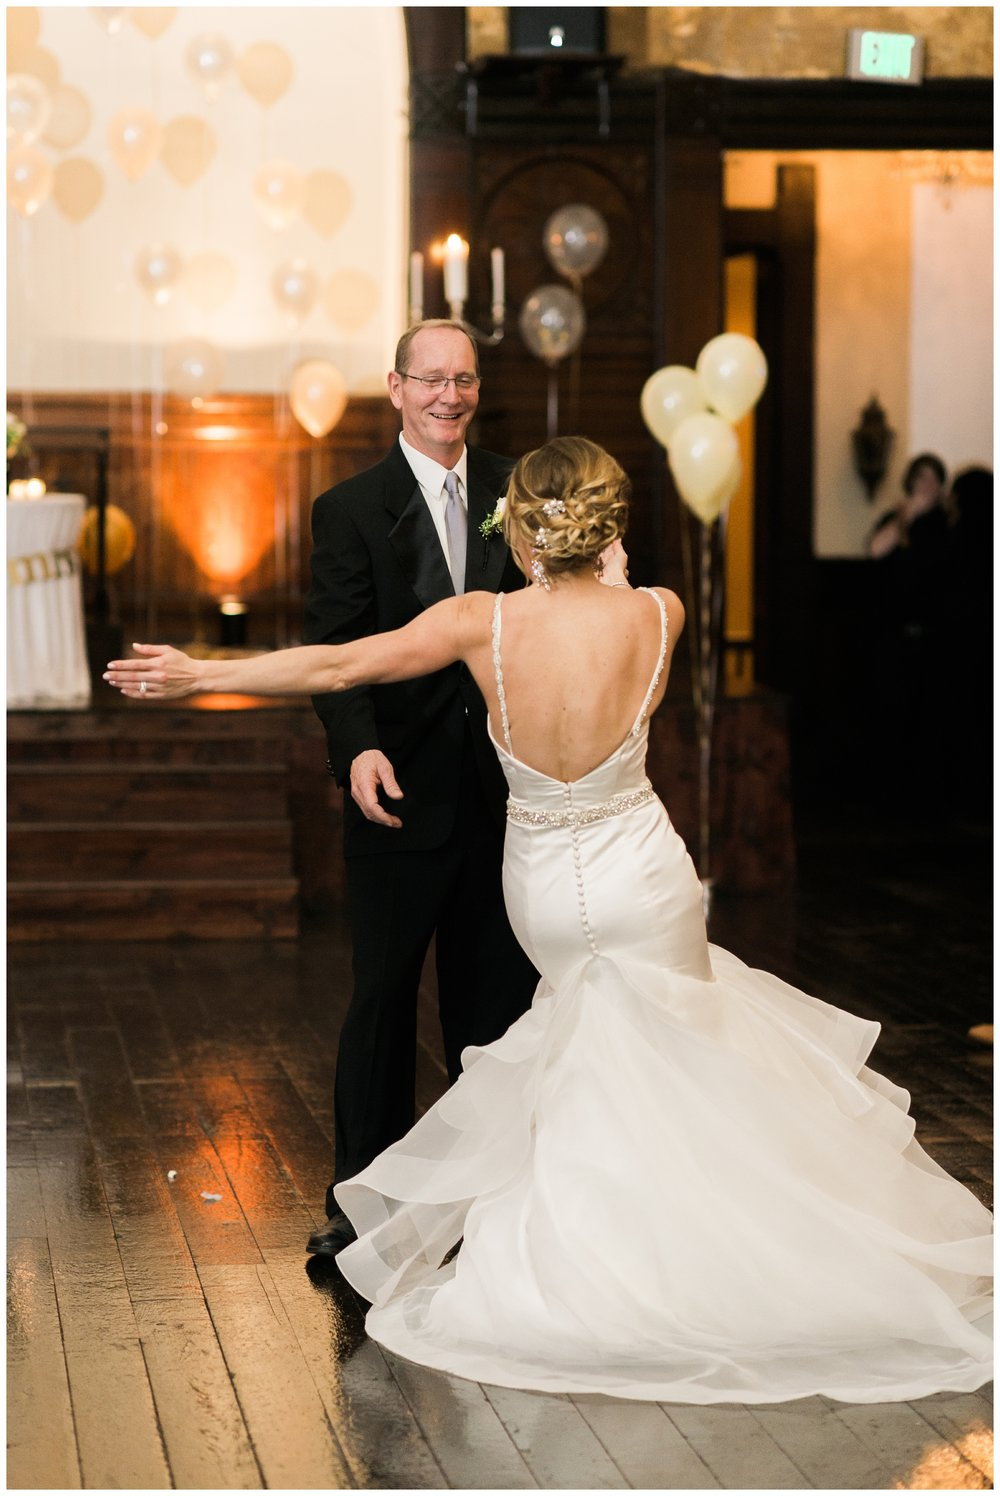 Rebecca_Bridges_Photography_Indianapolis_Wedding_Photographer_5852.jpg